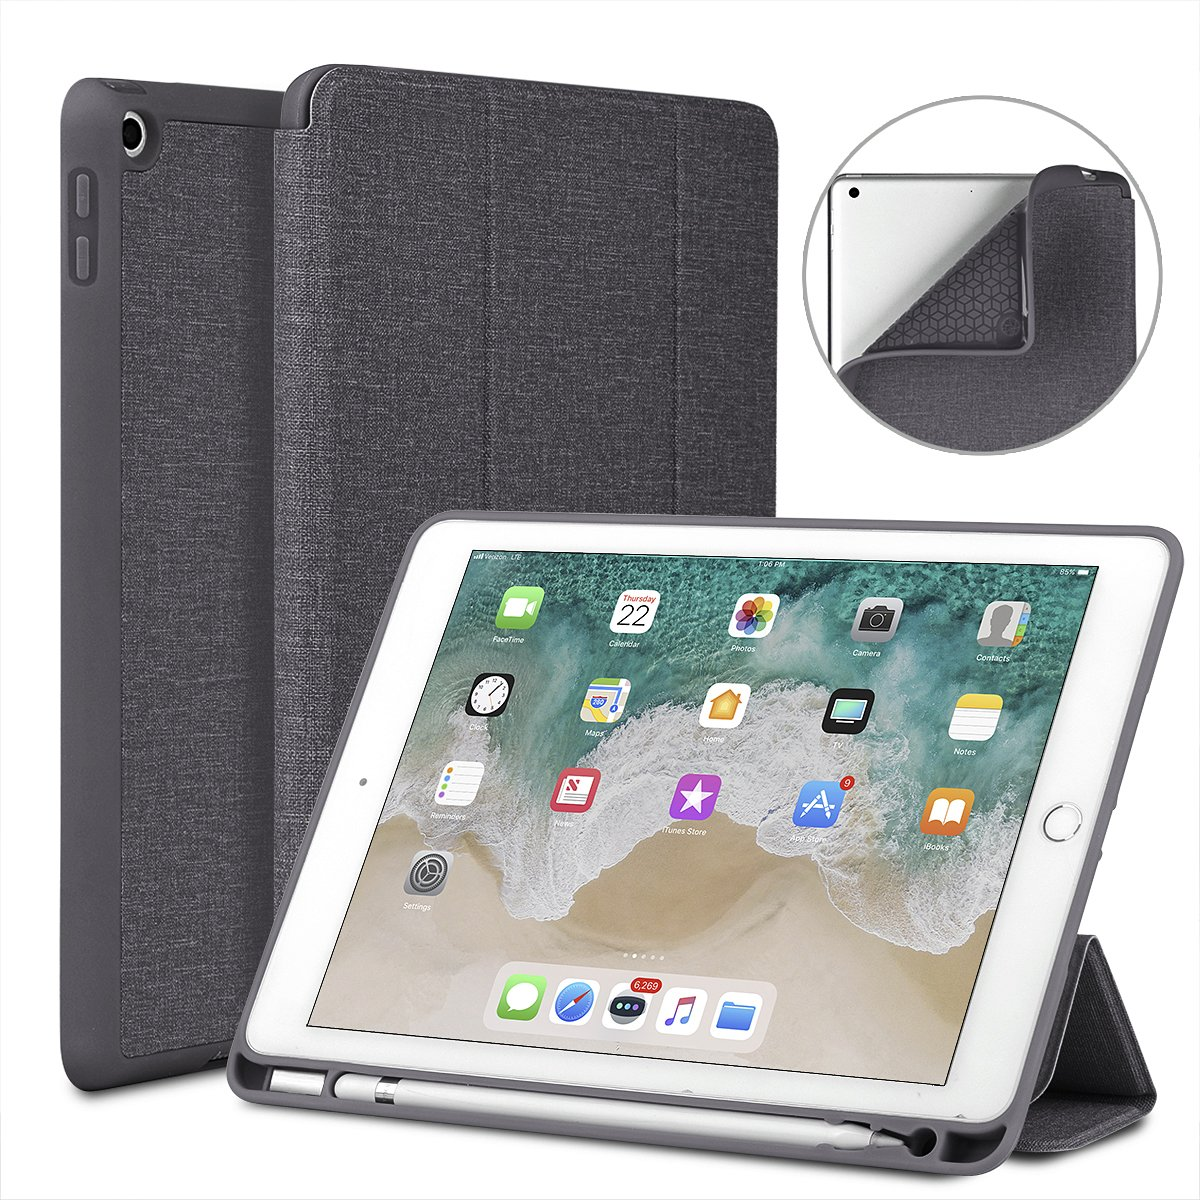 Soke New iPad 9.7 2018/2017 Case with Pencil Holder, Lightweight Smart Case Trifold Stand with Shockproof Soft TPU Back Cover and Auto Sleep/Wake Function for iPad 9.7 inch 5th/6th Generation, Grey